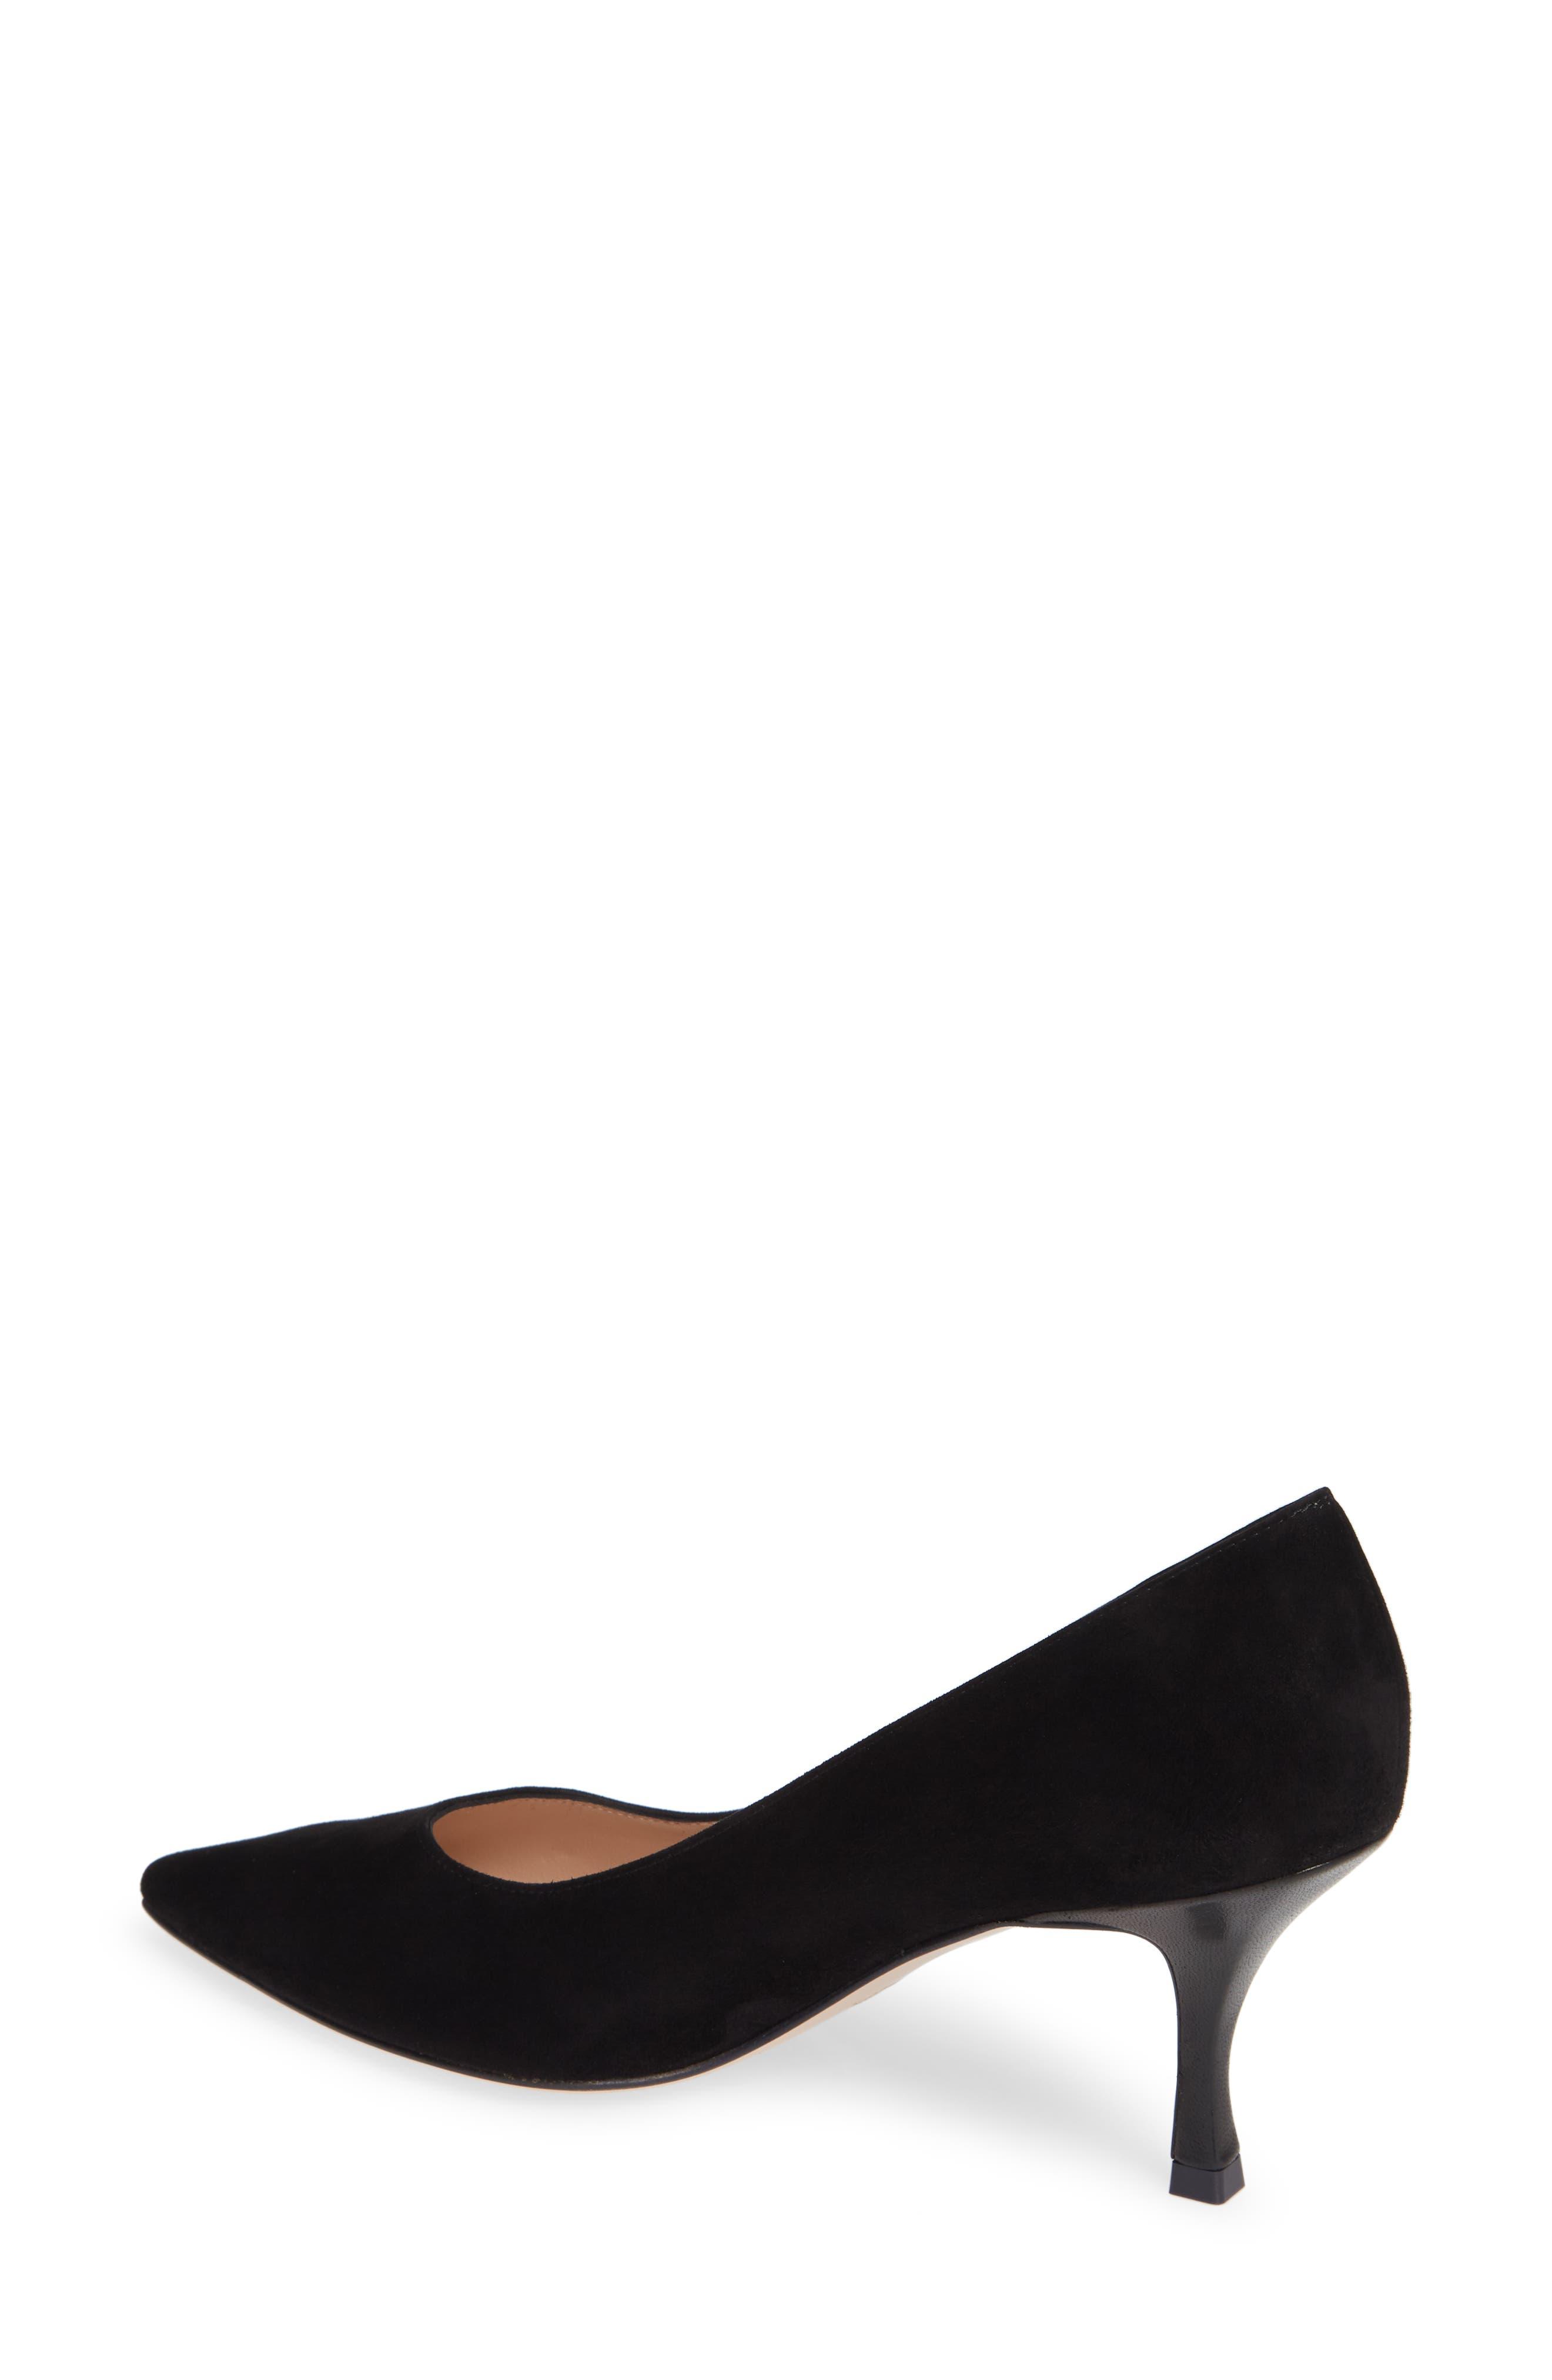 Tippi 70 Pointy Toe Pump,                             Alternate thumbnail 2, color,                             PITCH BLACK